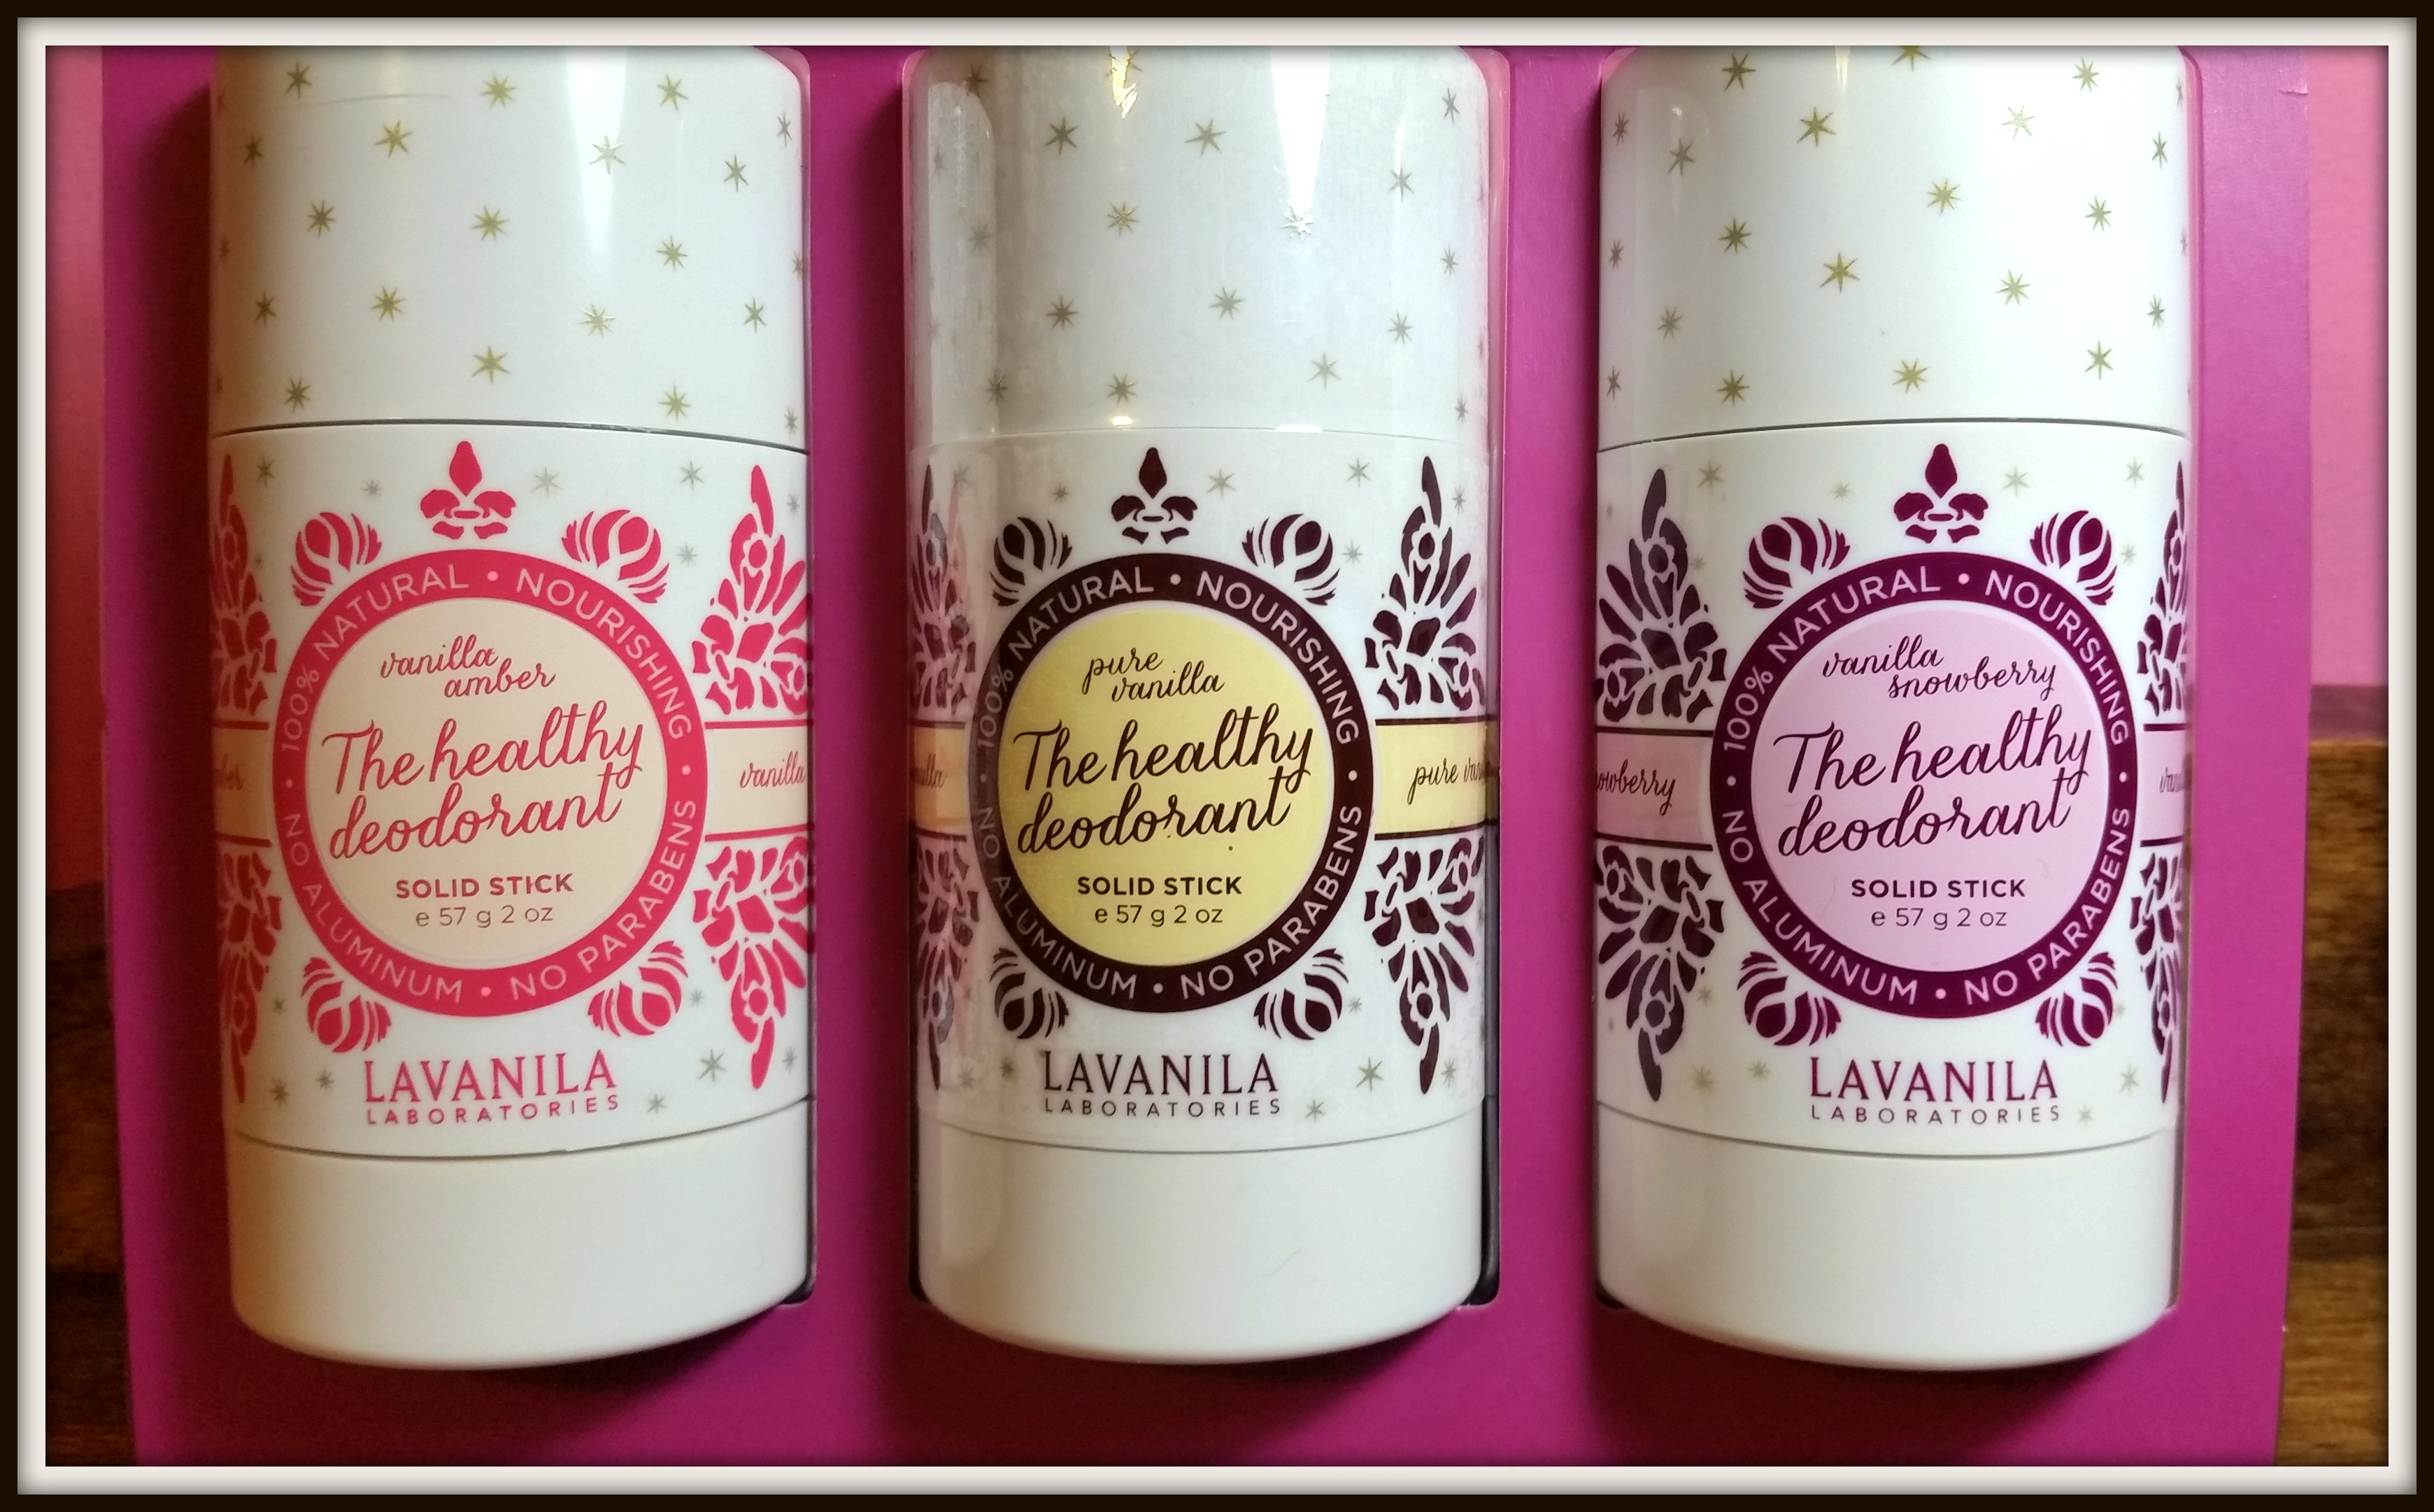 Lavanila Starlight Trio Deo Review (By WhippedGreenGirl.com)